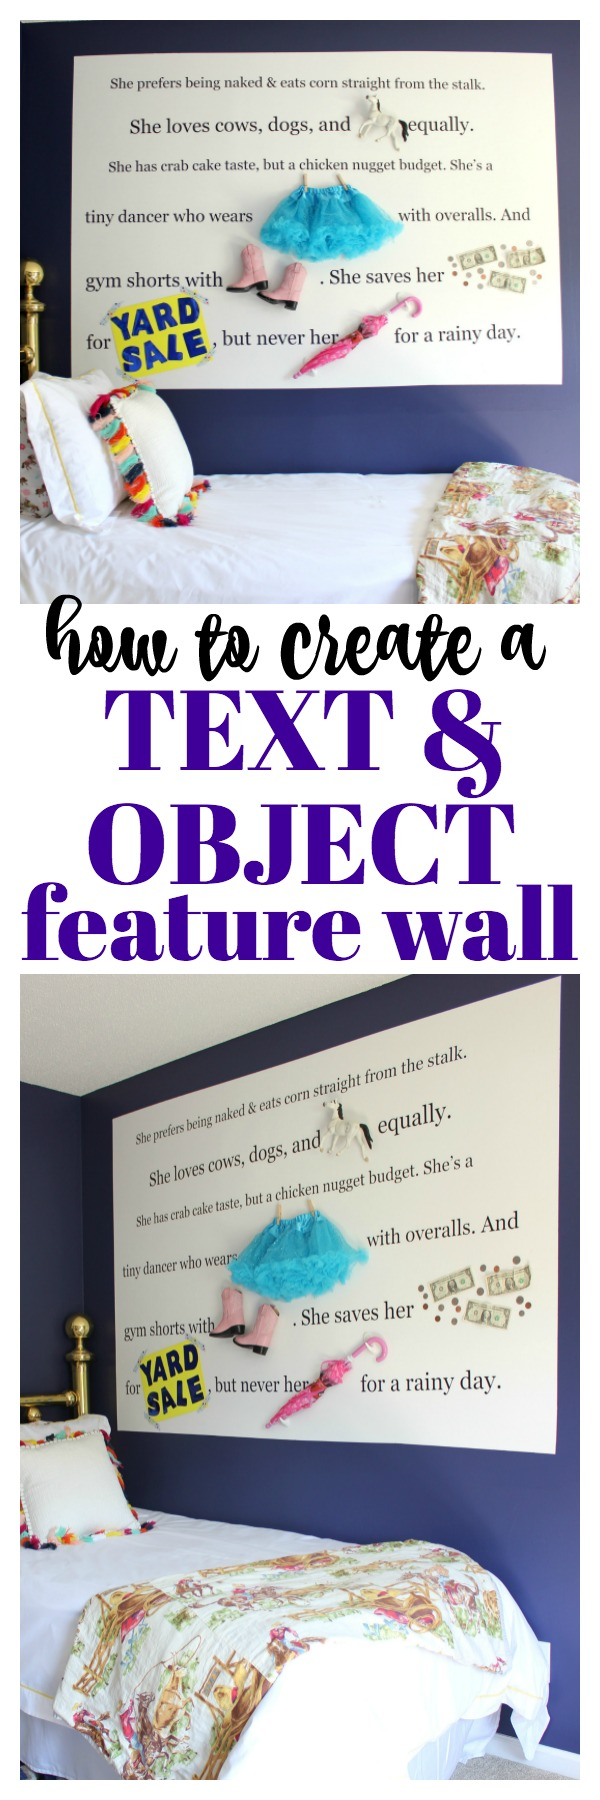 How to Create an Object and Text Feature Wall | Perfect for a kid's room and totally customizable! Great way to add a kid's unique personality to their room!